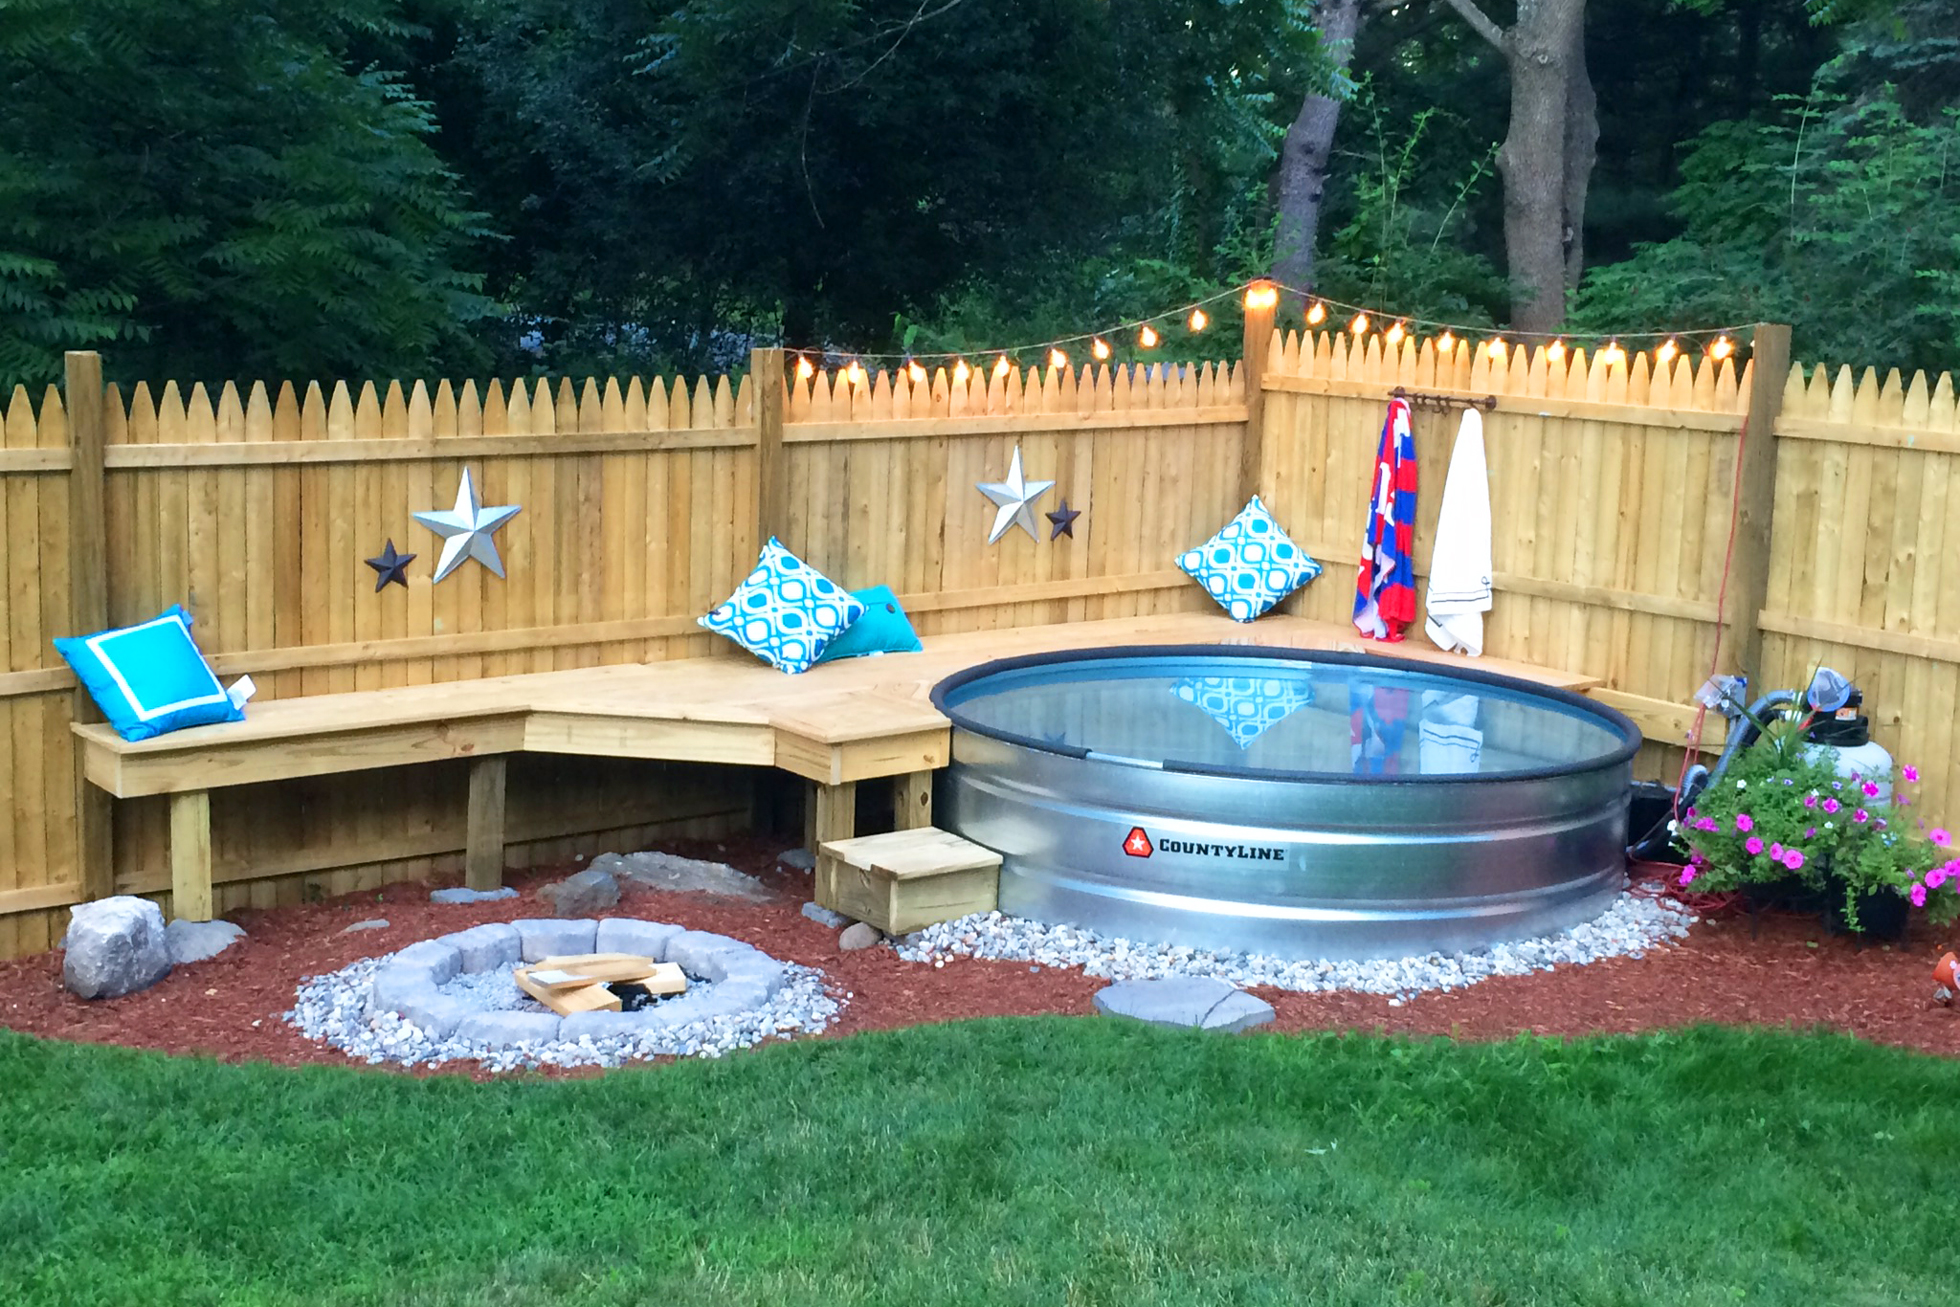 A stock tank pool and a fire pit with seating in a backyard